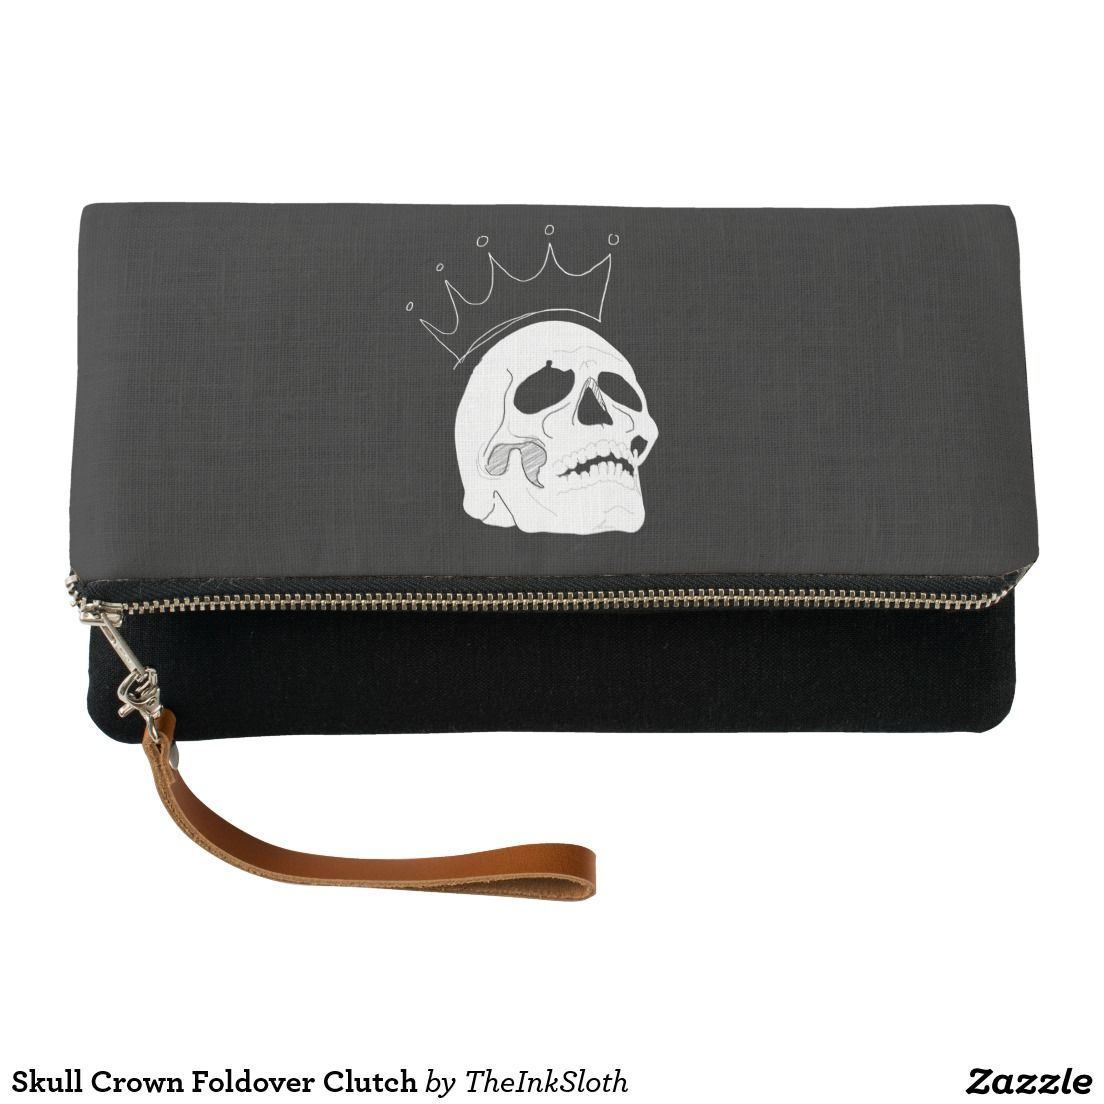 #Skull #Crown #Foldover #Clutch #bag #accessories